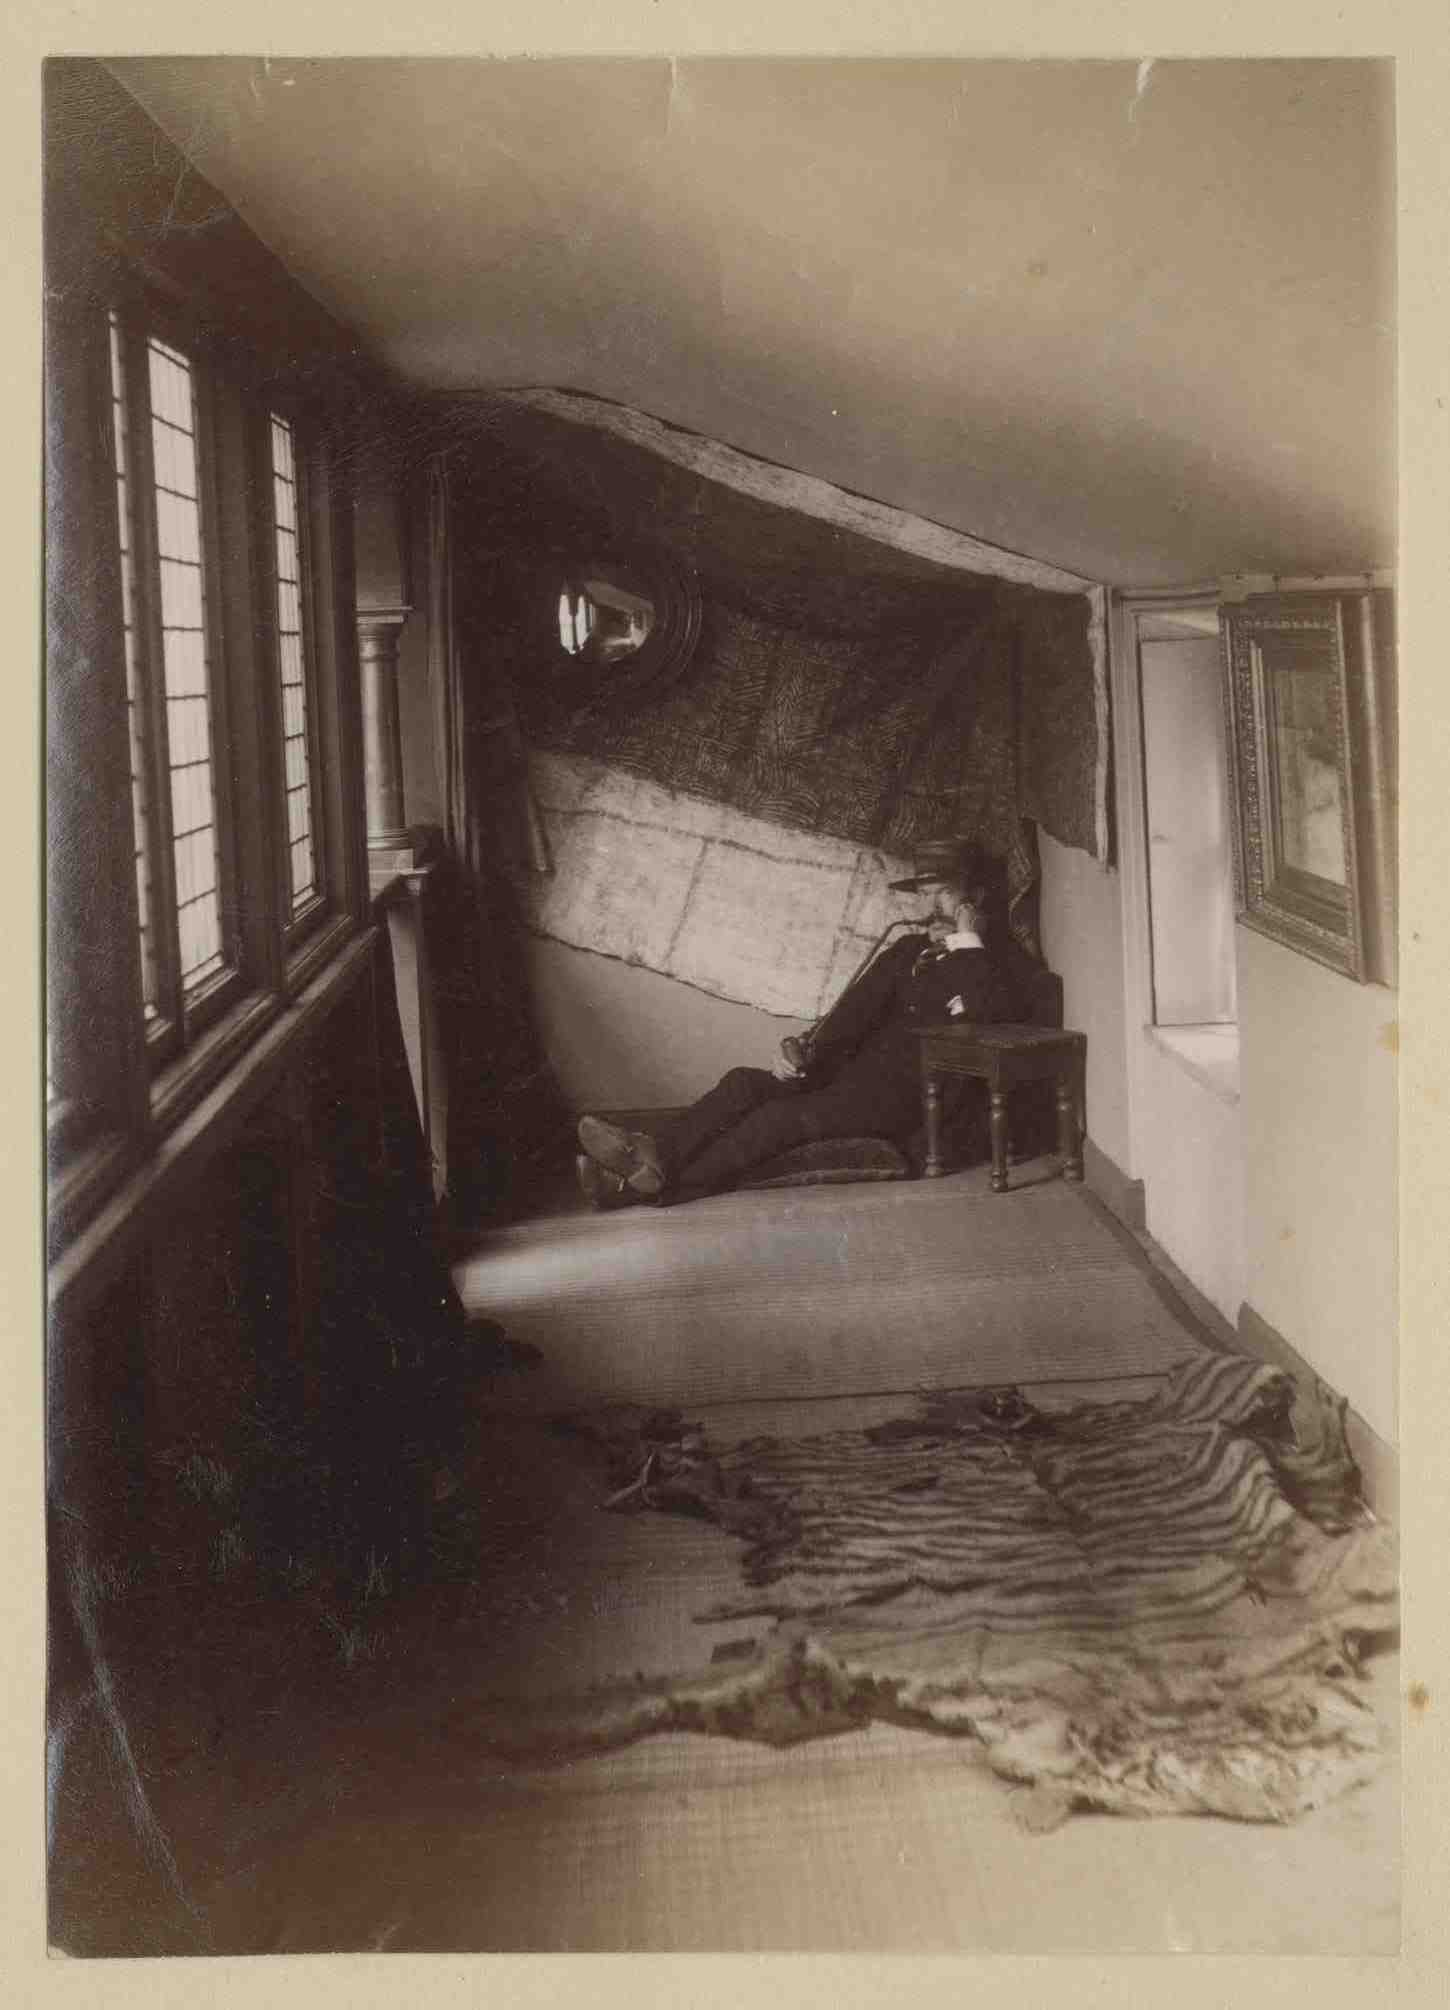 Lauriston photograph album – artist's studio with man  seated in the corner of an attic